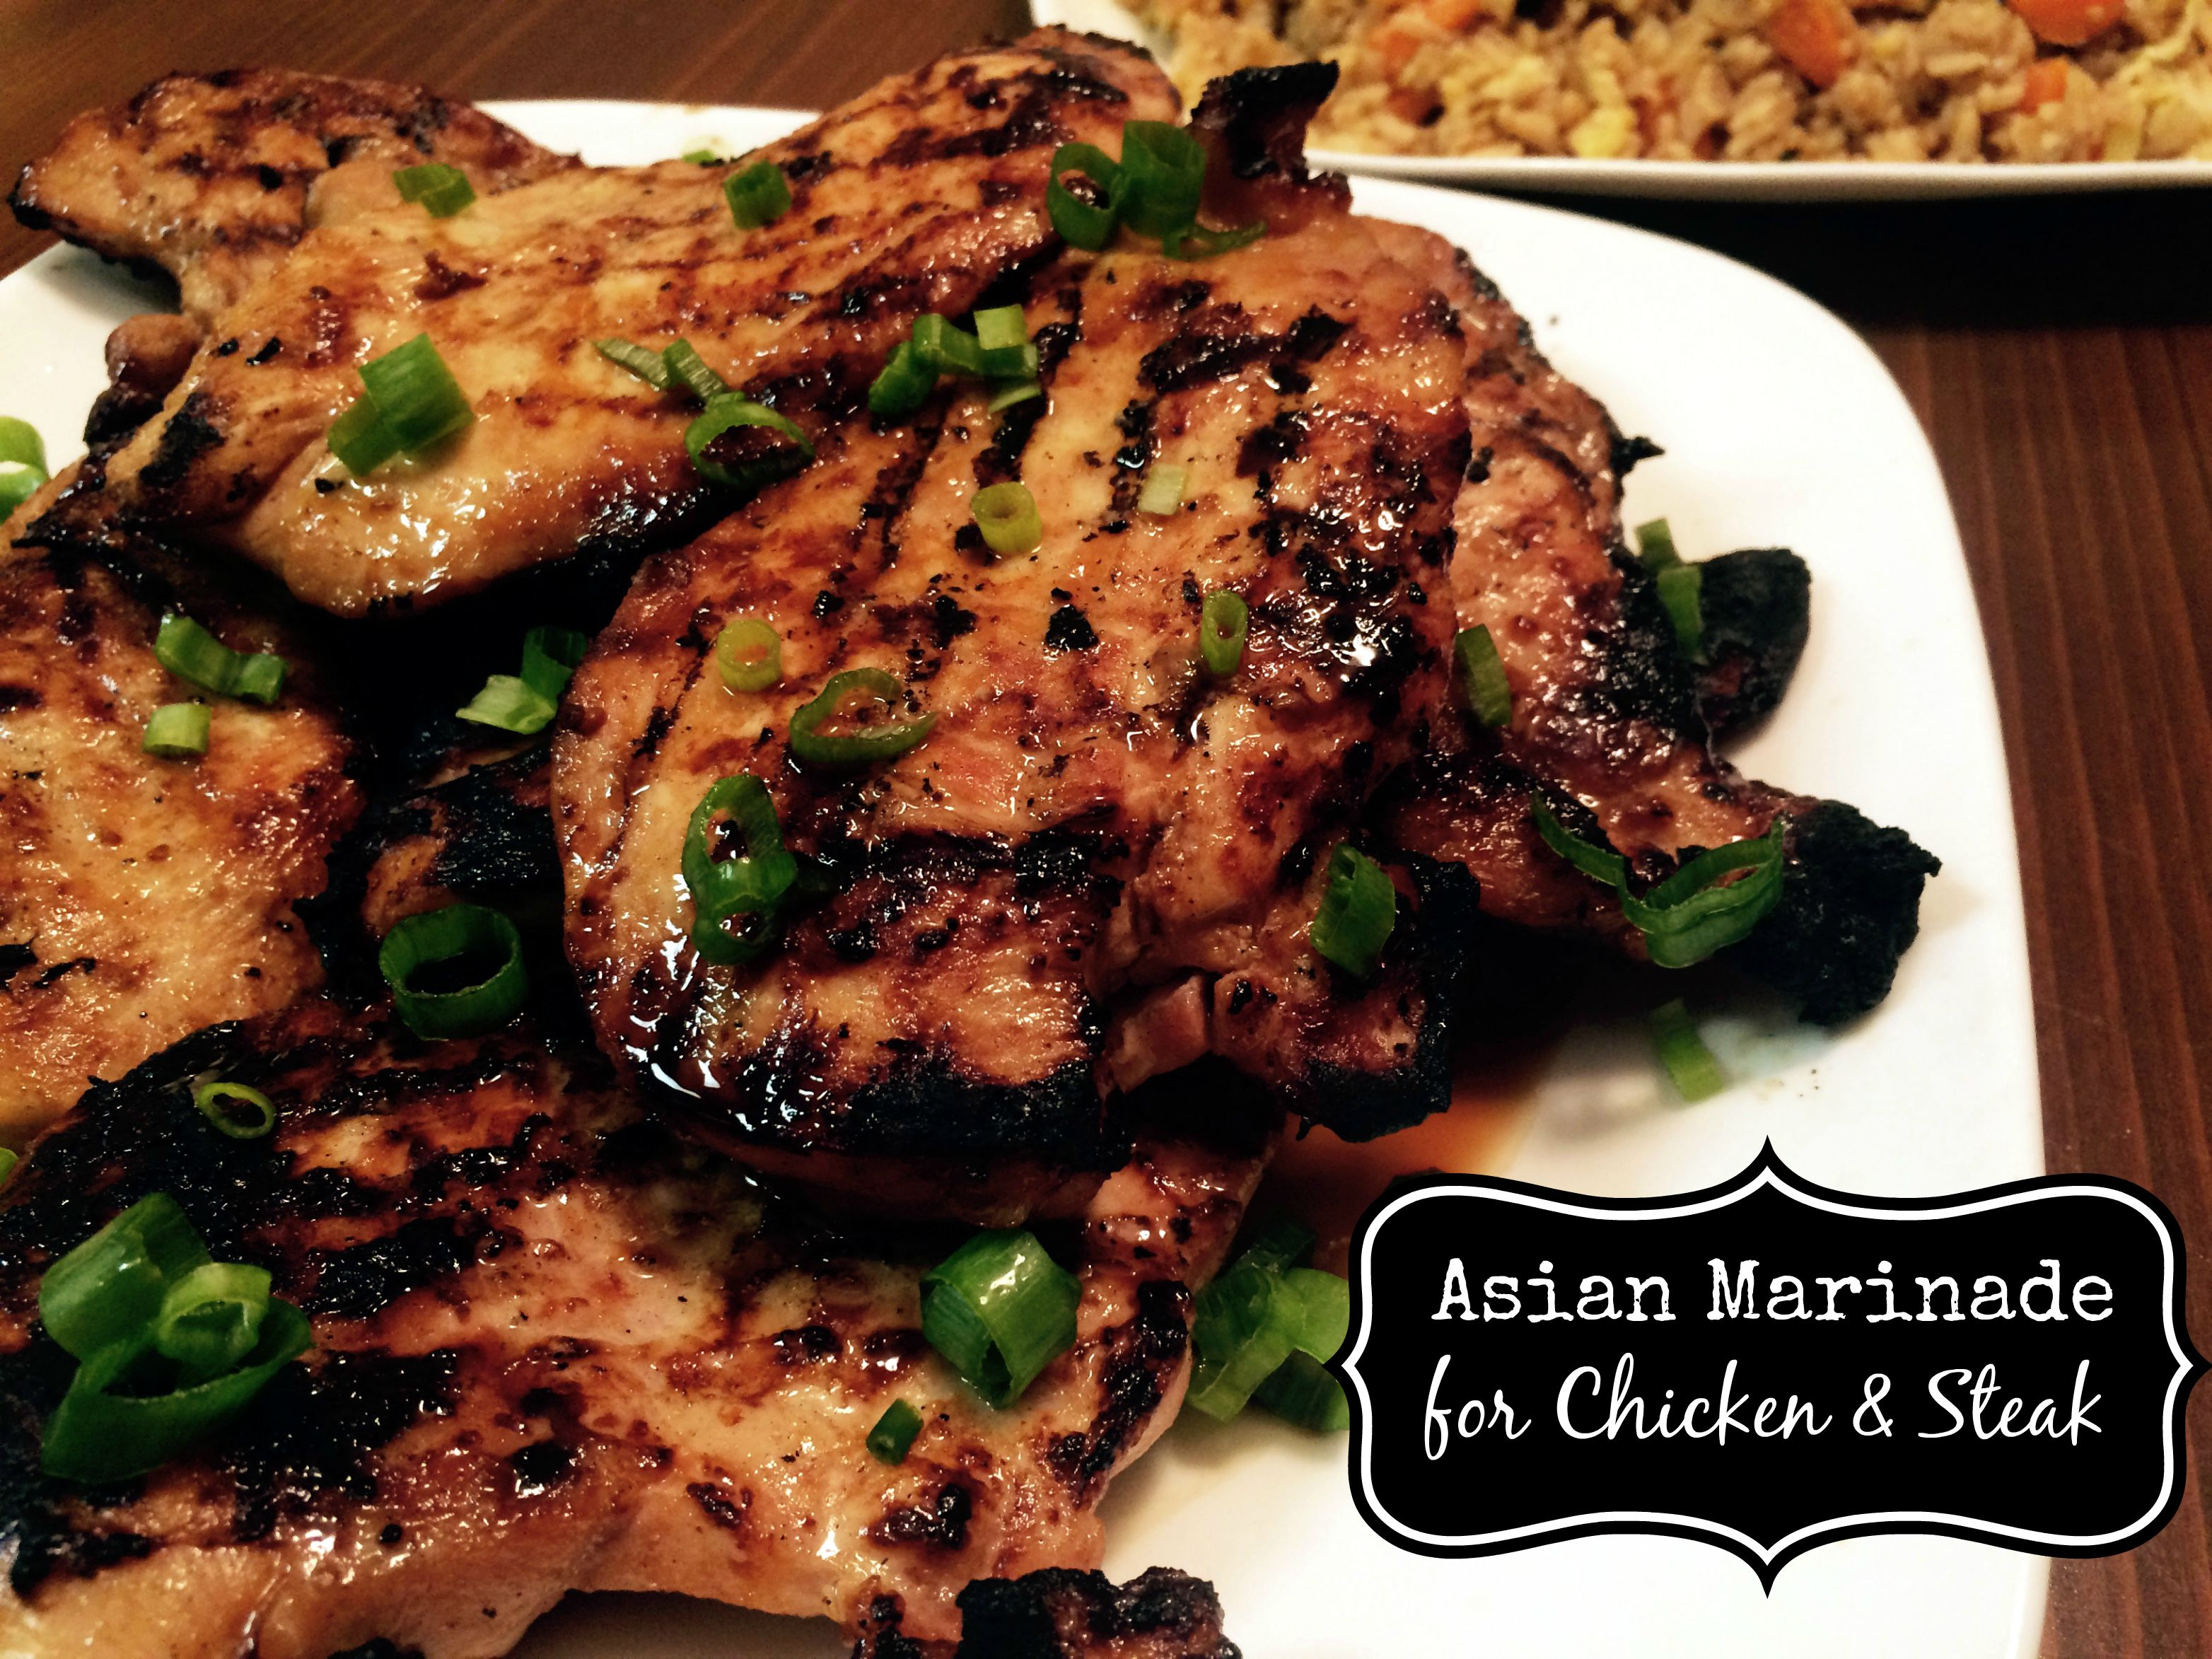 Easy Asian Marinade for Chicken & Steak